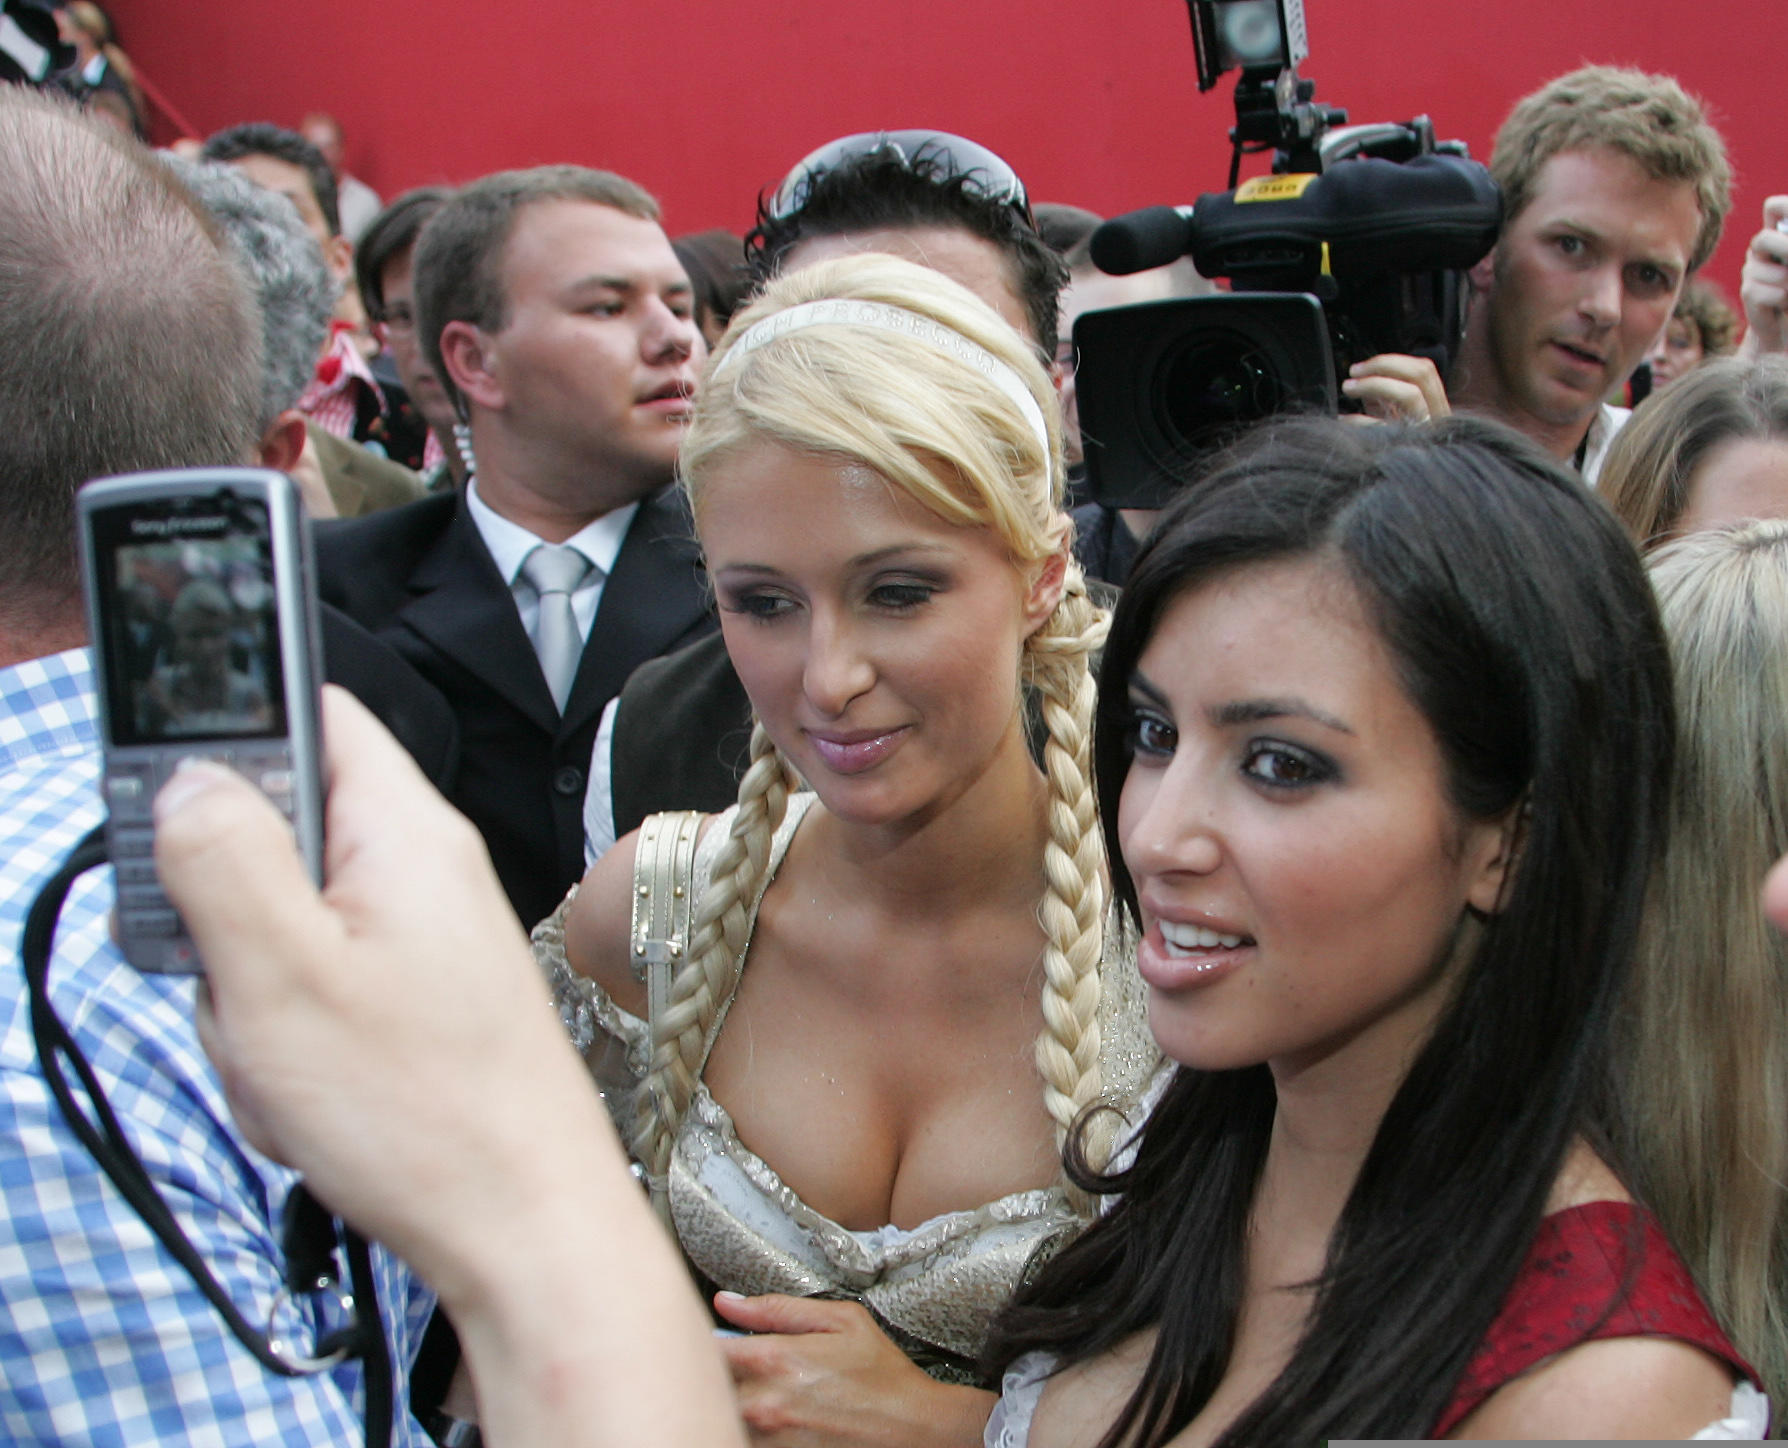 U.S. socialite Paris Hilton, left, walks with her friend Kim Kardashian through the crowd at the Oktoberfest beer festival in Munich, southern Germany, Monday, Sept. 25, 2006. The 25-year-old American socialite, sometime screen siren and budding songstress, showed off a golden dirndl-inspired creation in this Bavarian city famous for its beer drinking and its annual Oktoberfest, which began Sept. 16. (AP Photo/Diether Endlicher)